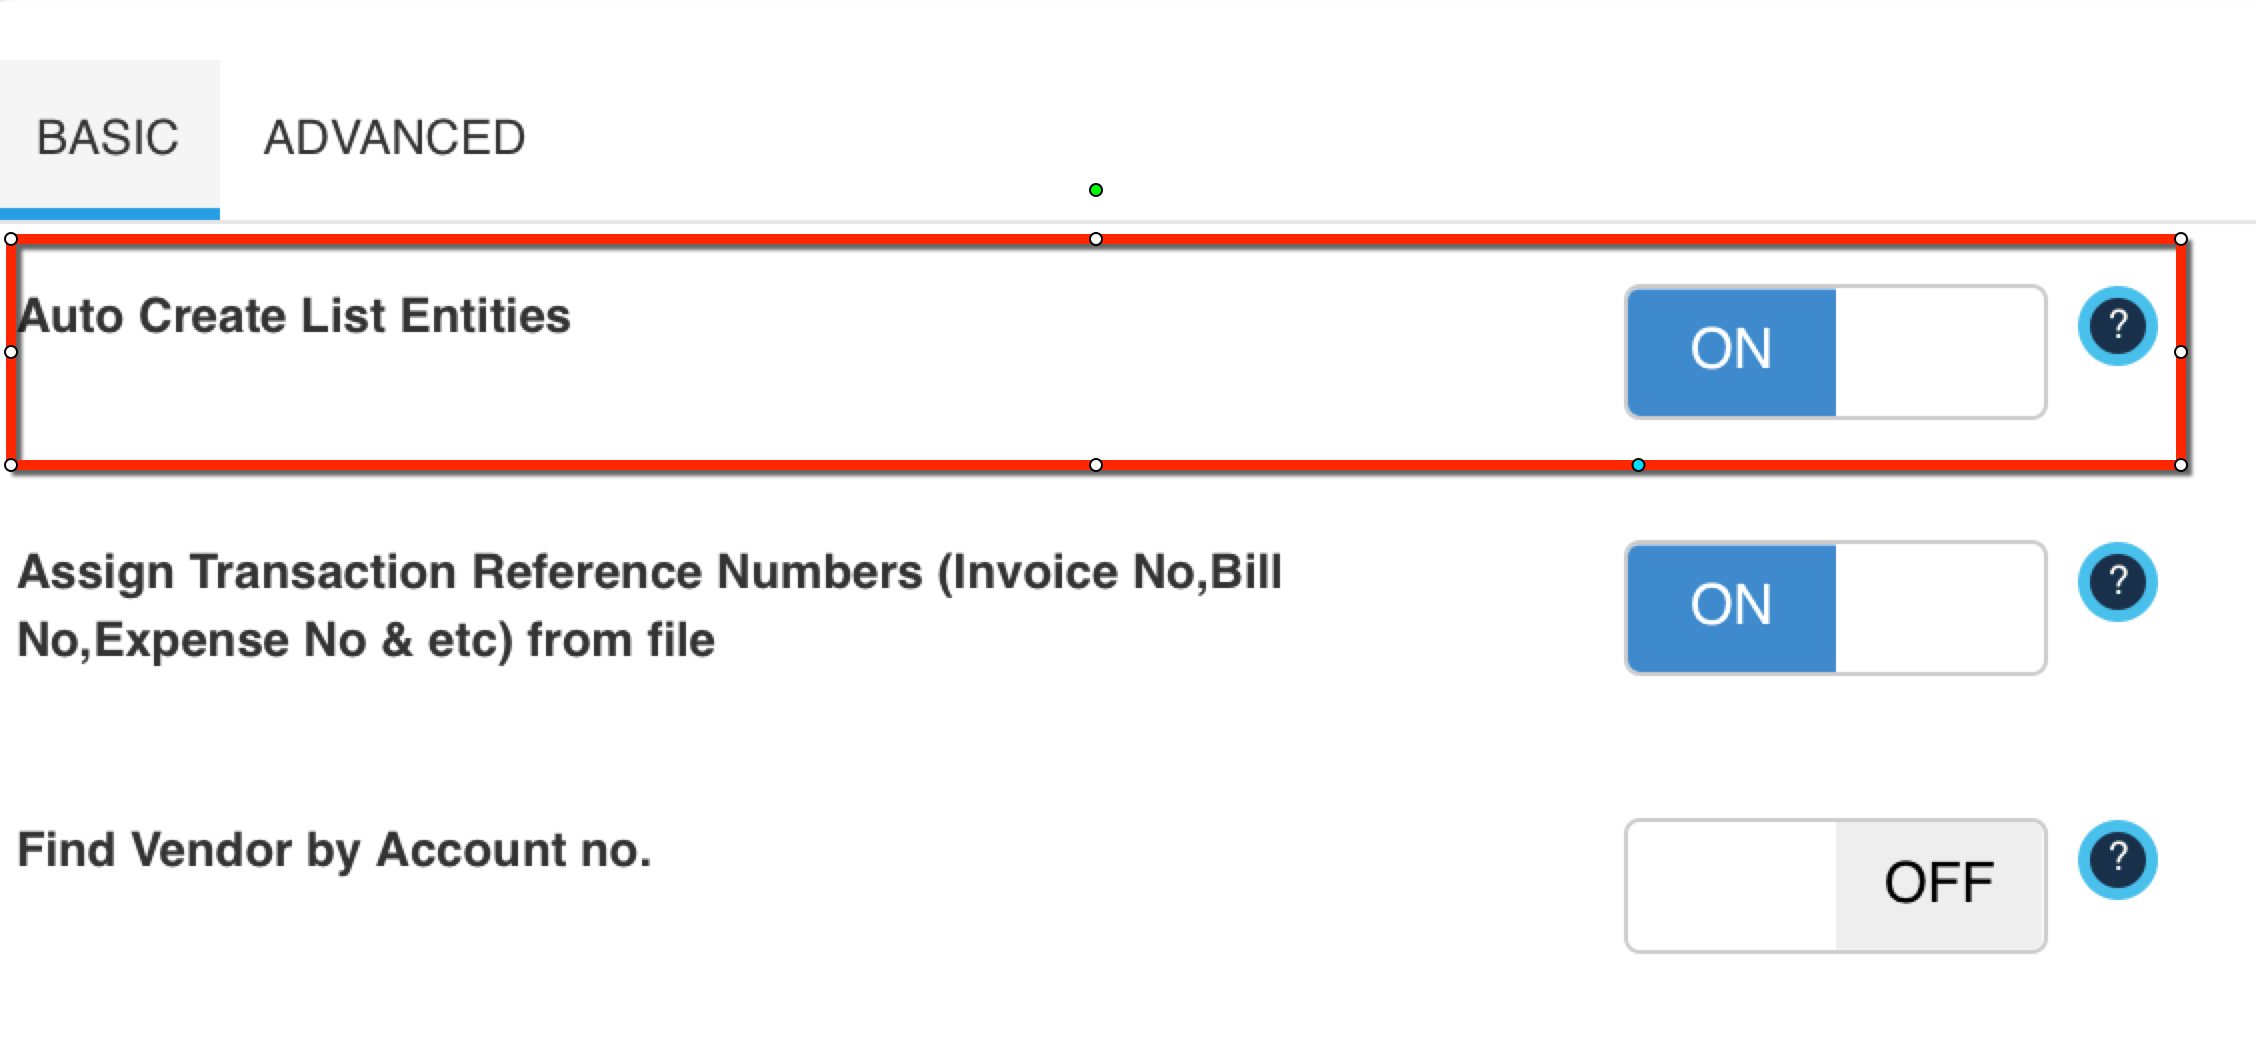 Auto Creation Of CustomerVendorProducts Services Effortless - Quickbooks online invoicing portal features